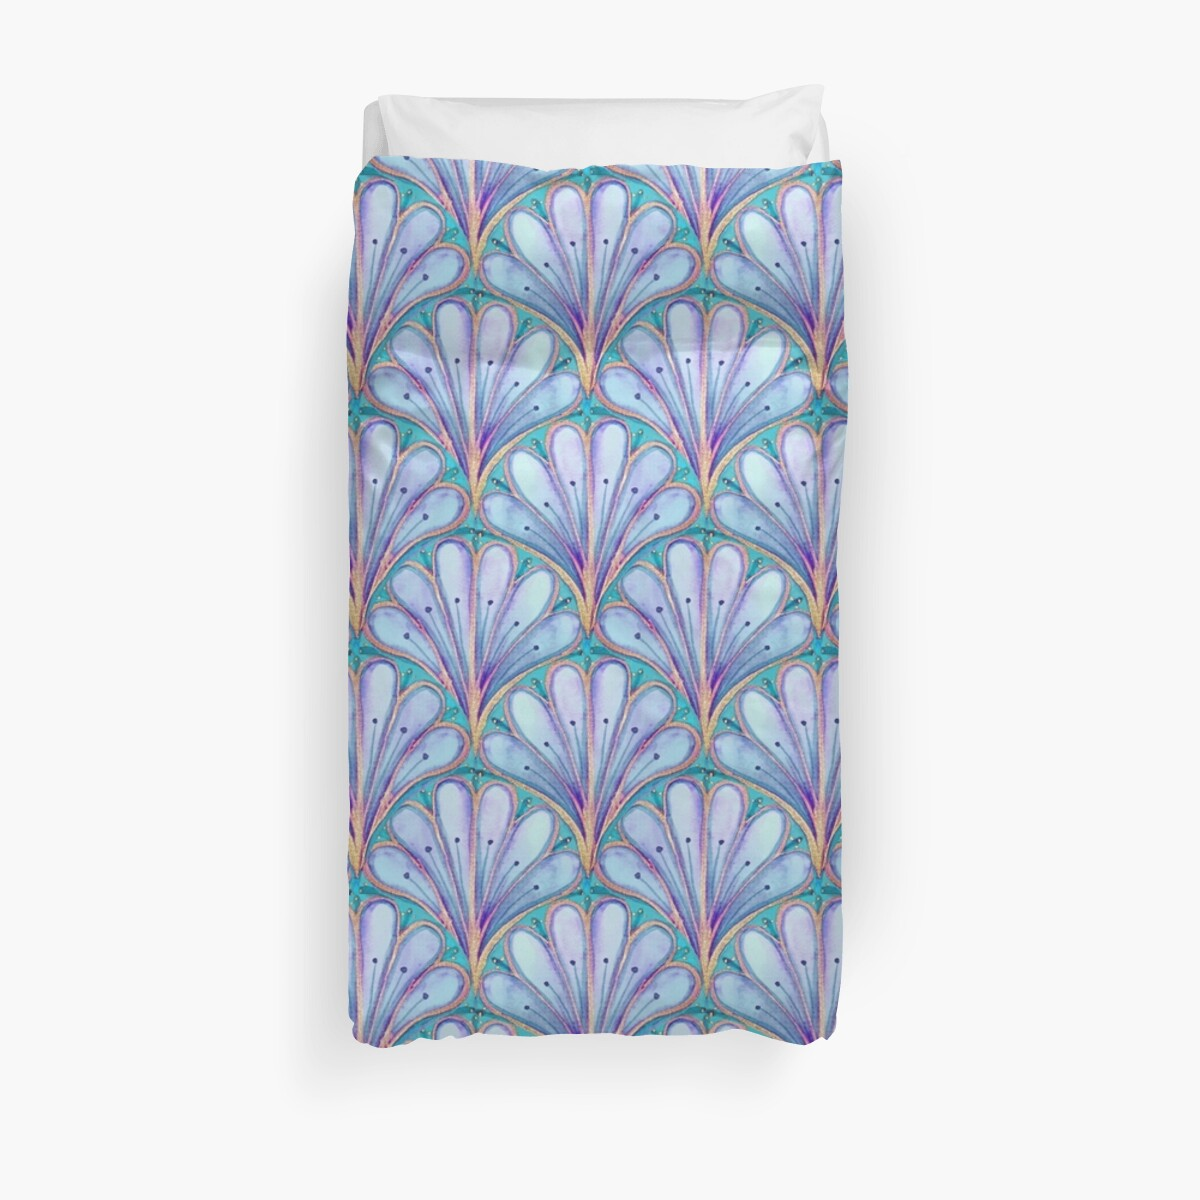 Art Deco Home Accessories Art Deco Fan Pattern Watercolor Blue Seashell Pattern Duvet Cover By Magentarose